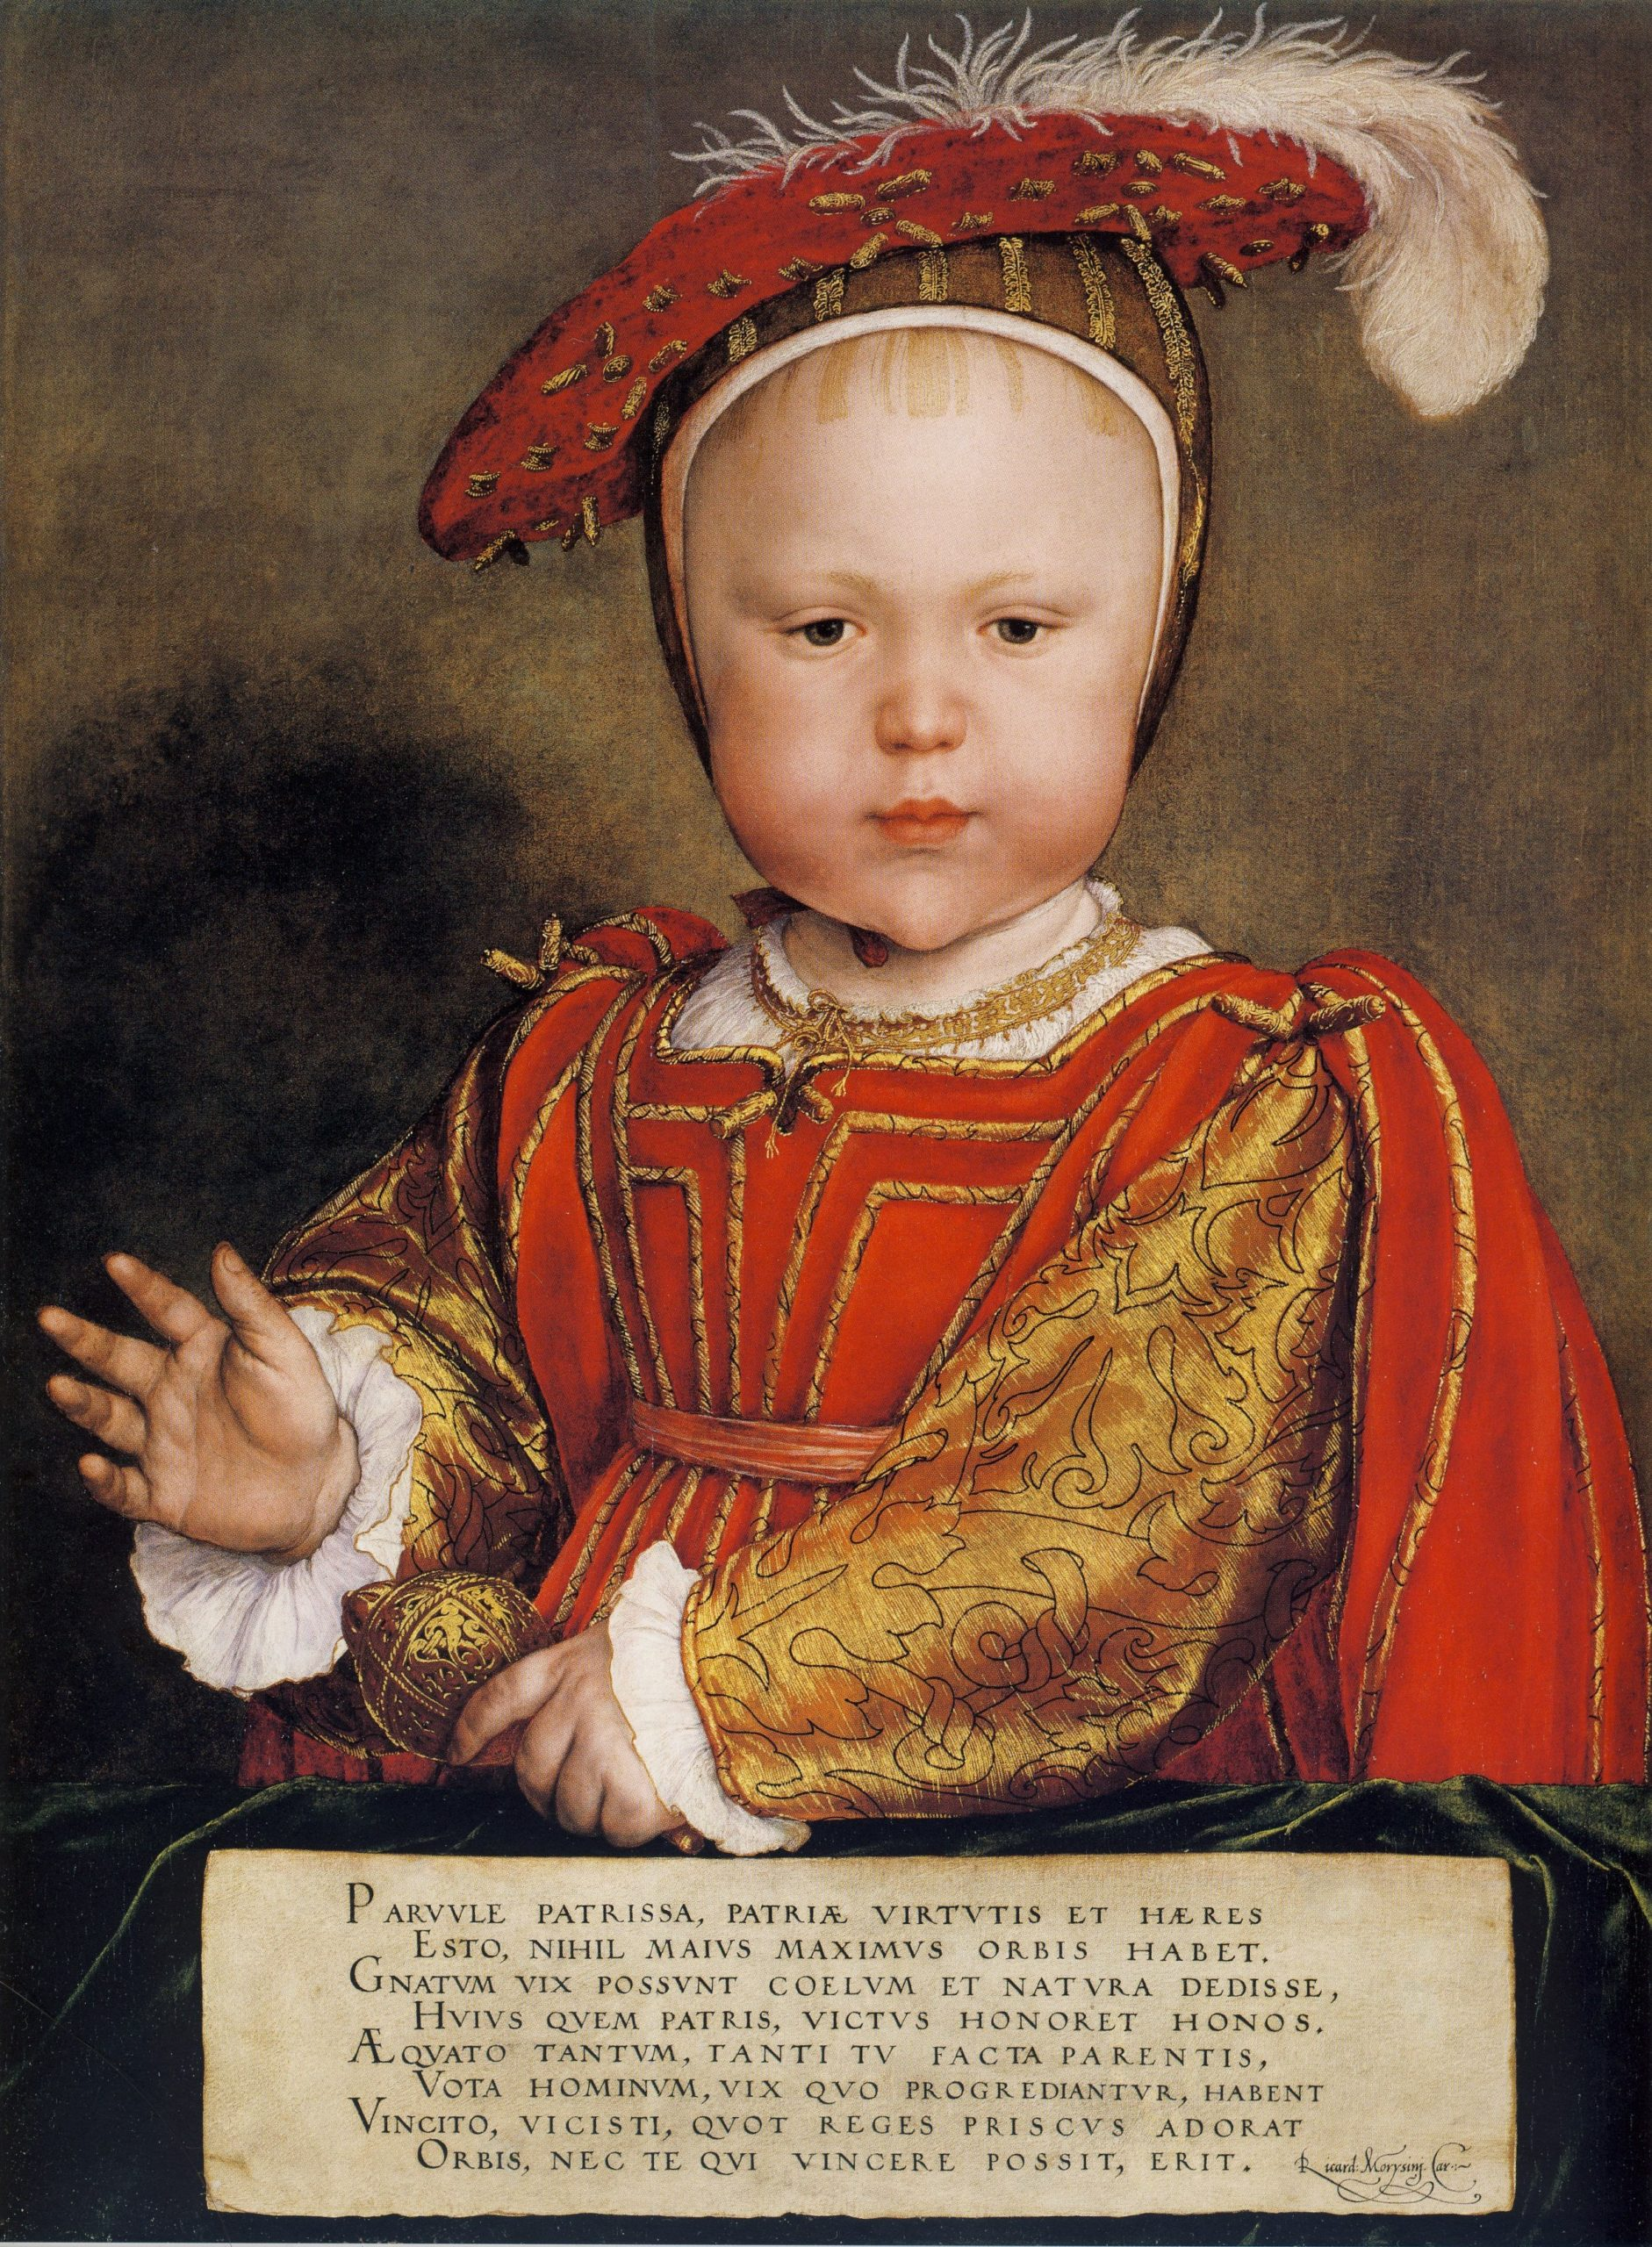 October 15, 1537 – Christening of Edward VI